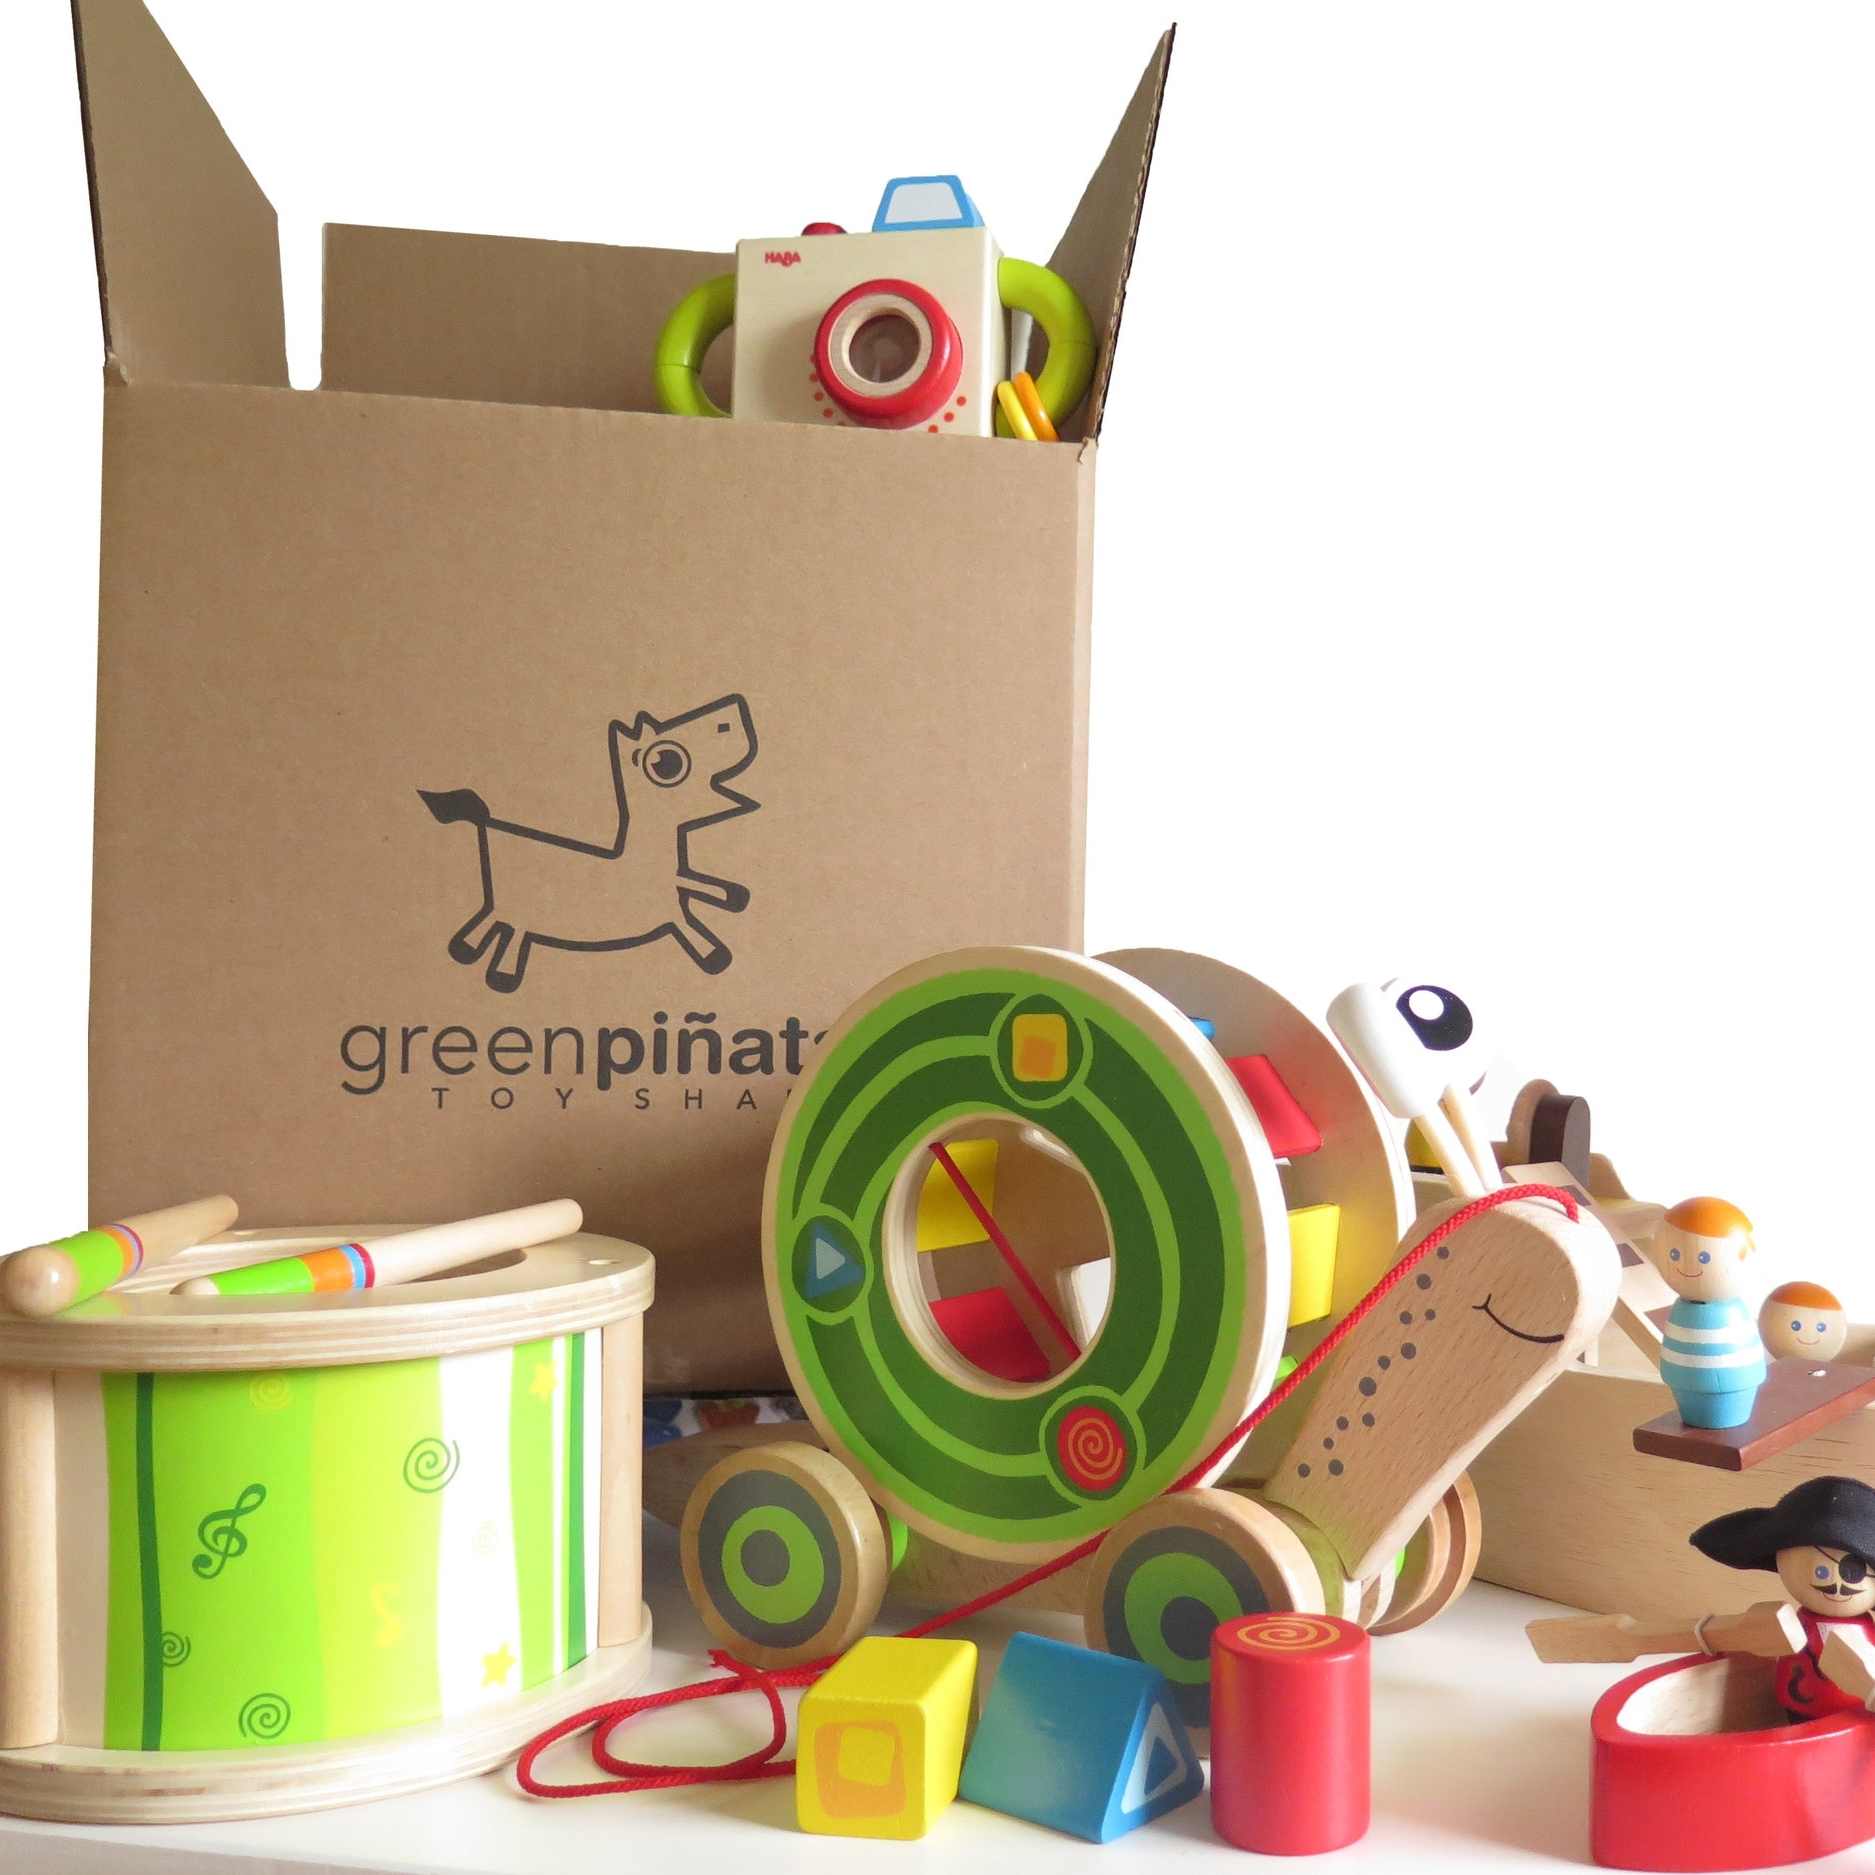 Green Pinata Toys - greenpinatatoys.comThe gift that keeps on giving, every single month. Green Pinata Toys brings safe, educational toys right to your door while picking up the old ones. (Babson M'11)